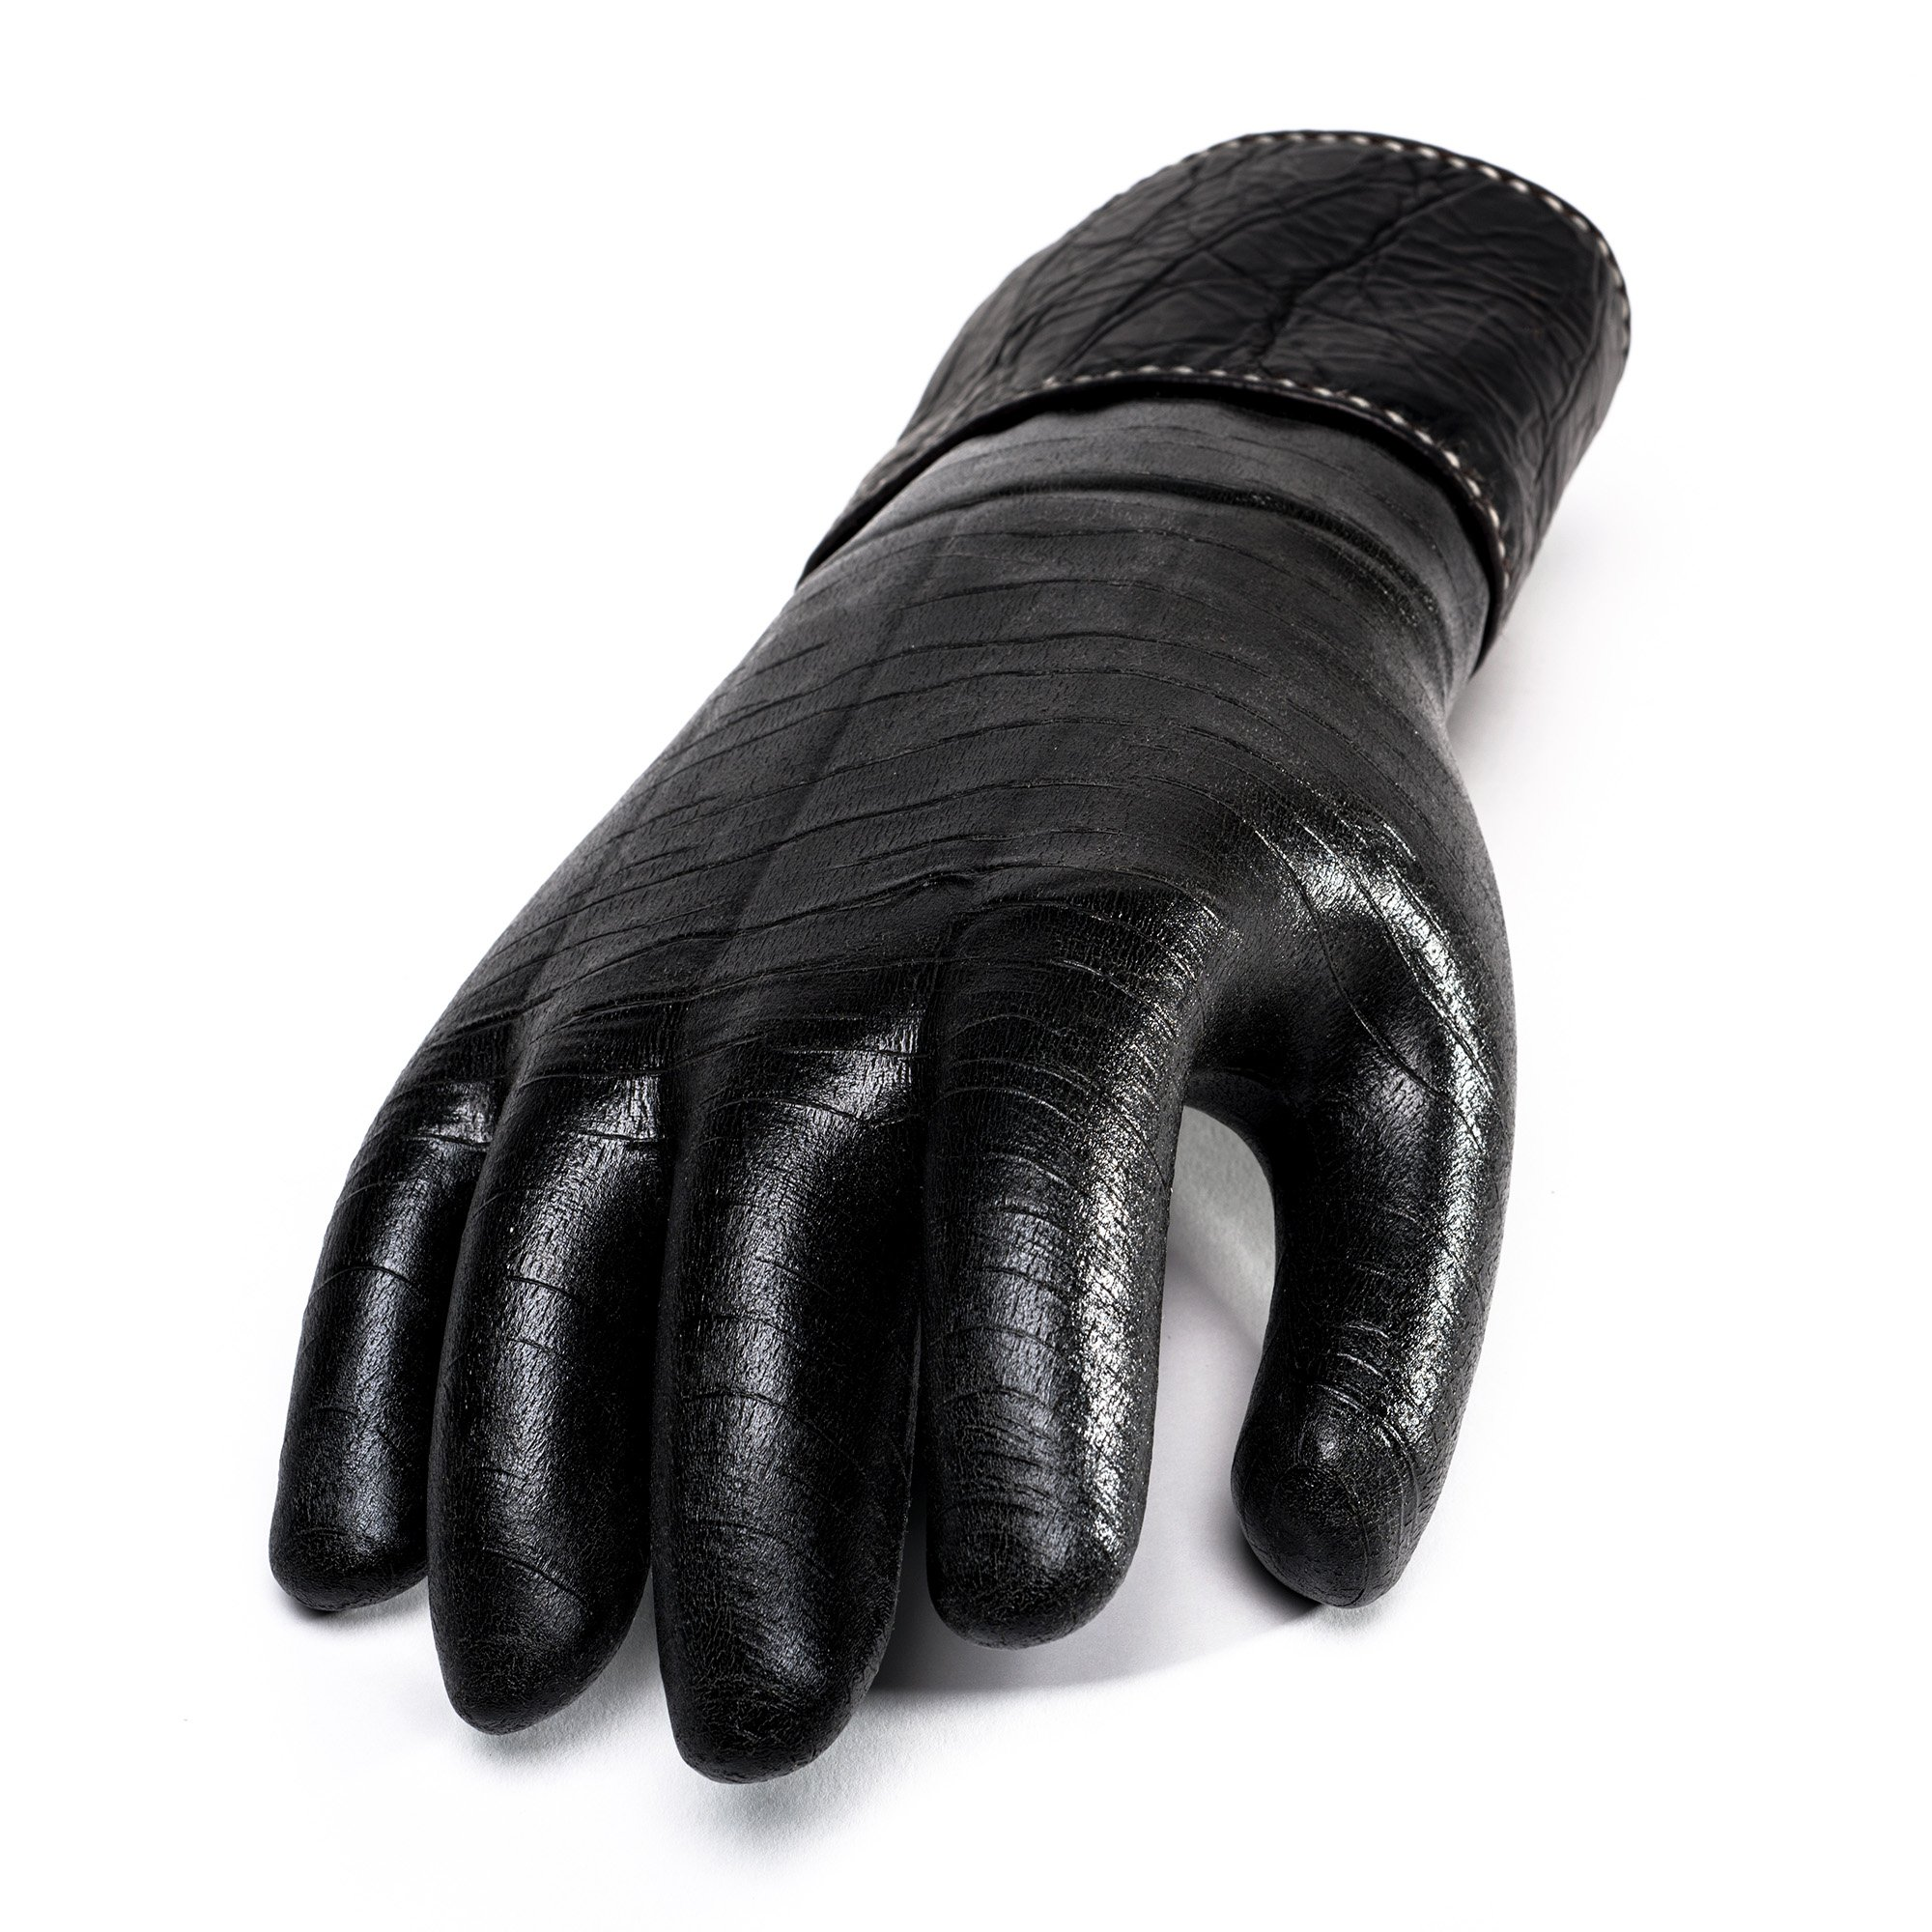 Billy Twang BOSS PIT GLOVE Leather grilling goves by BOSS PIT GLOVE (Image #3)